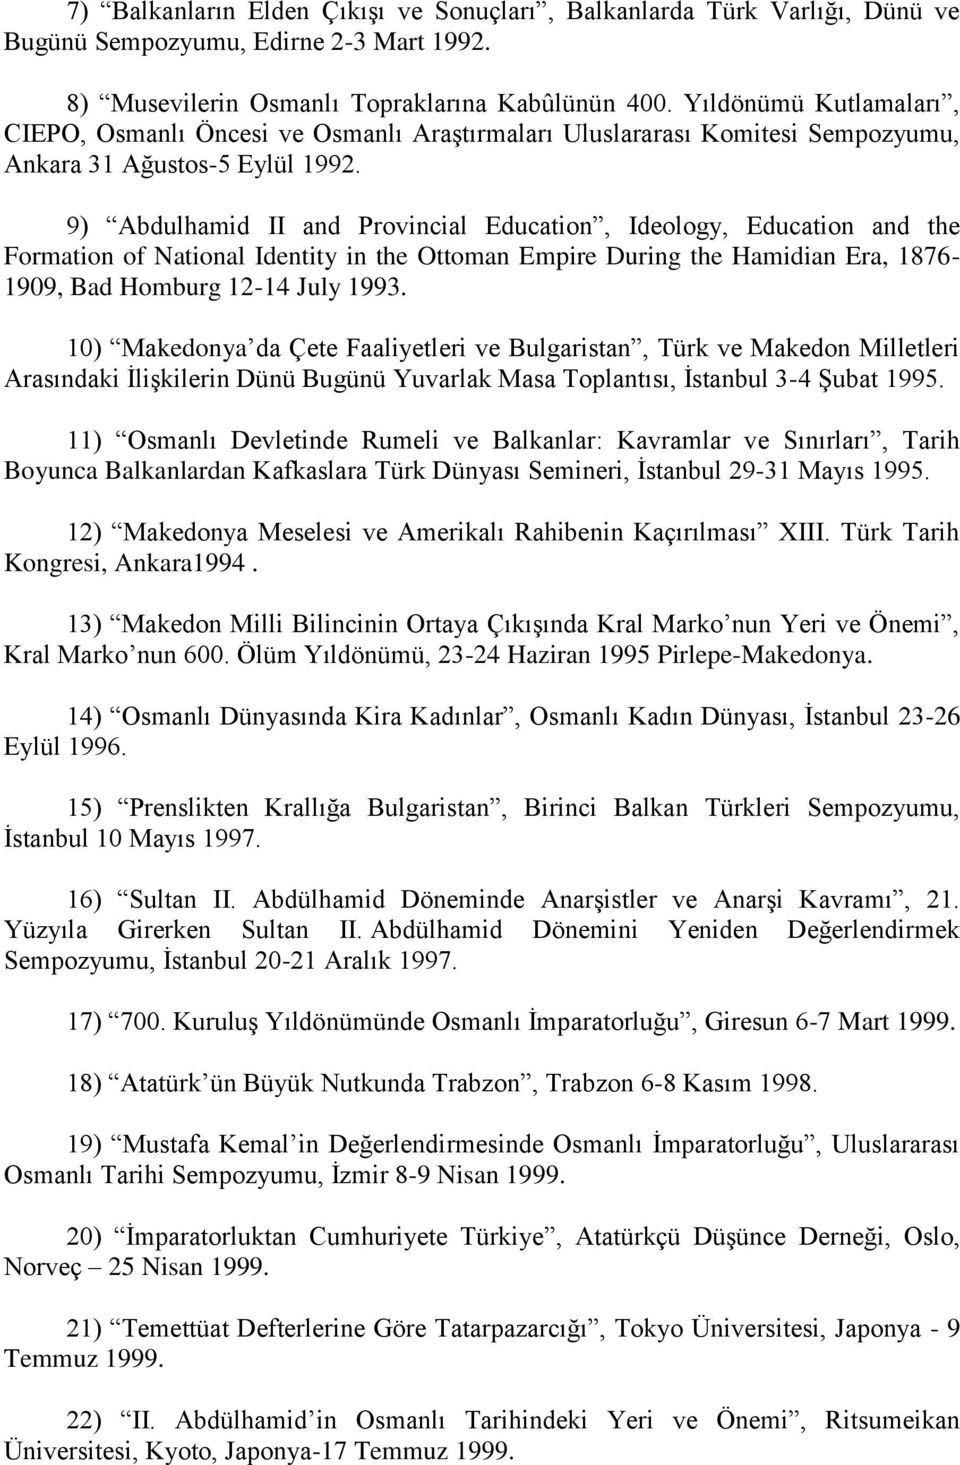 9) Abdulhamid II and Provincial Education, Ideology, Education and the Formation of National Identity in the Ottoman Empire During the Hamidian Era, 1876-1909, Bad Homburg 12-14 July 1993.